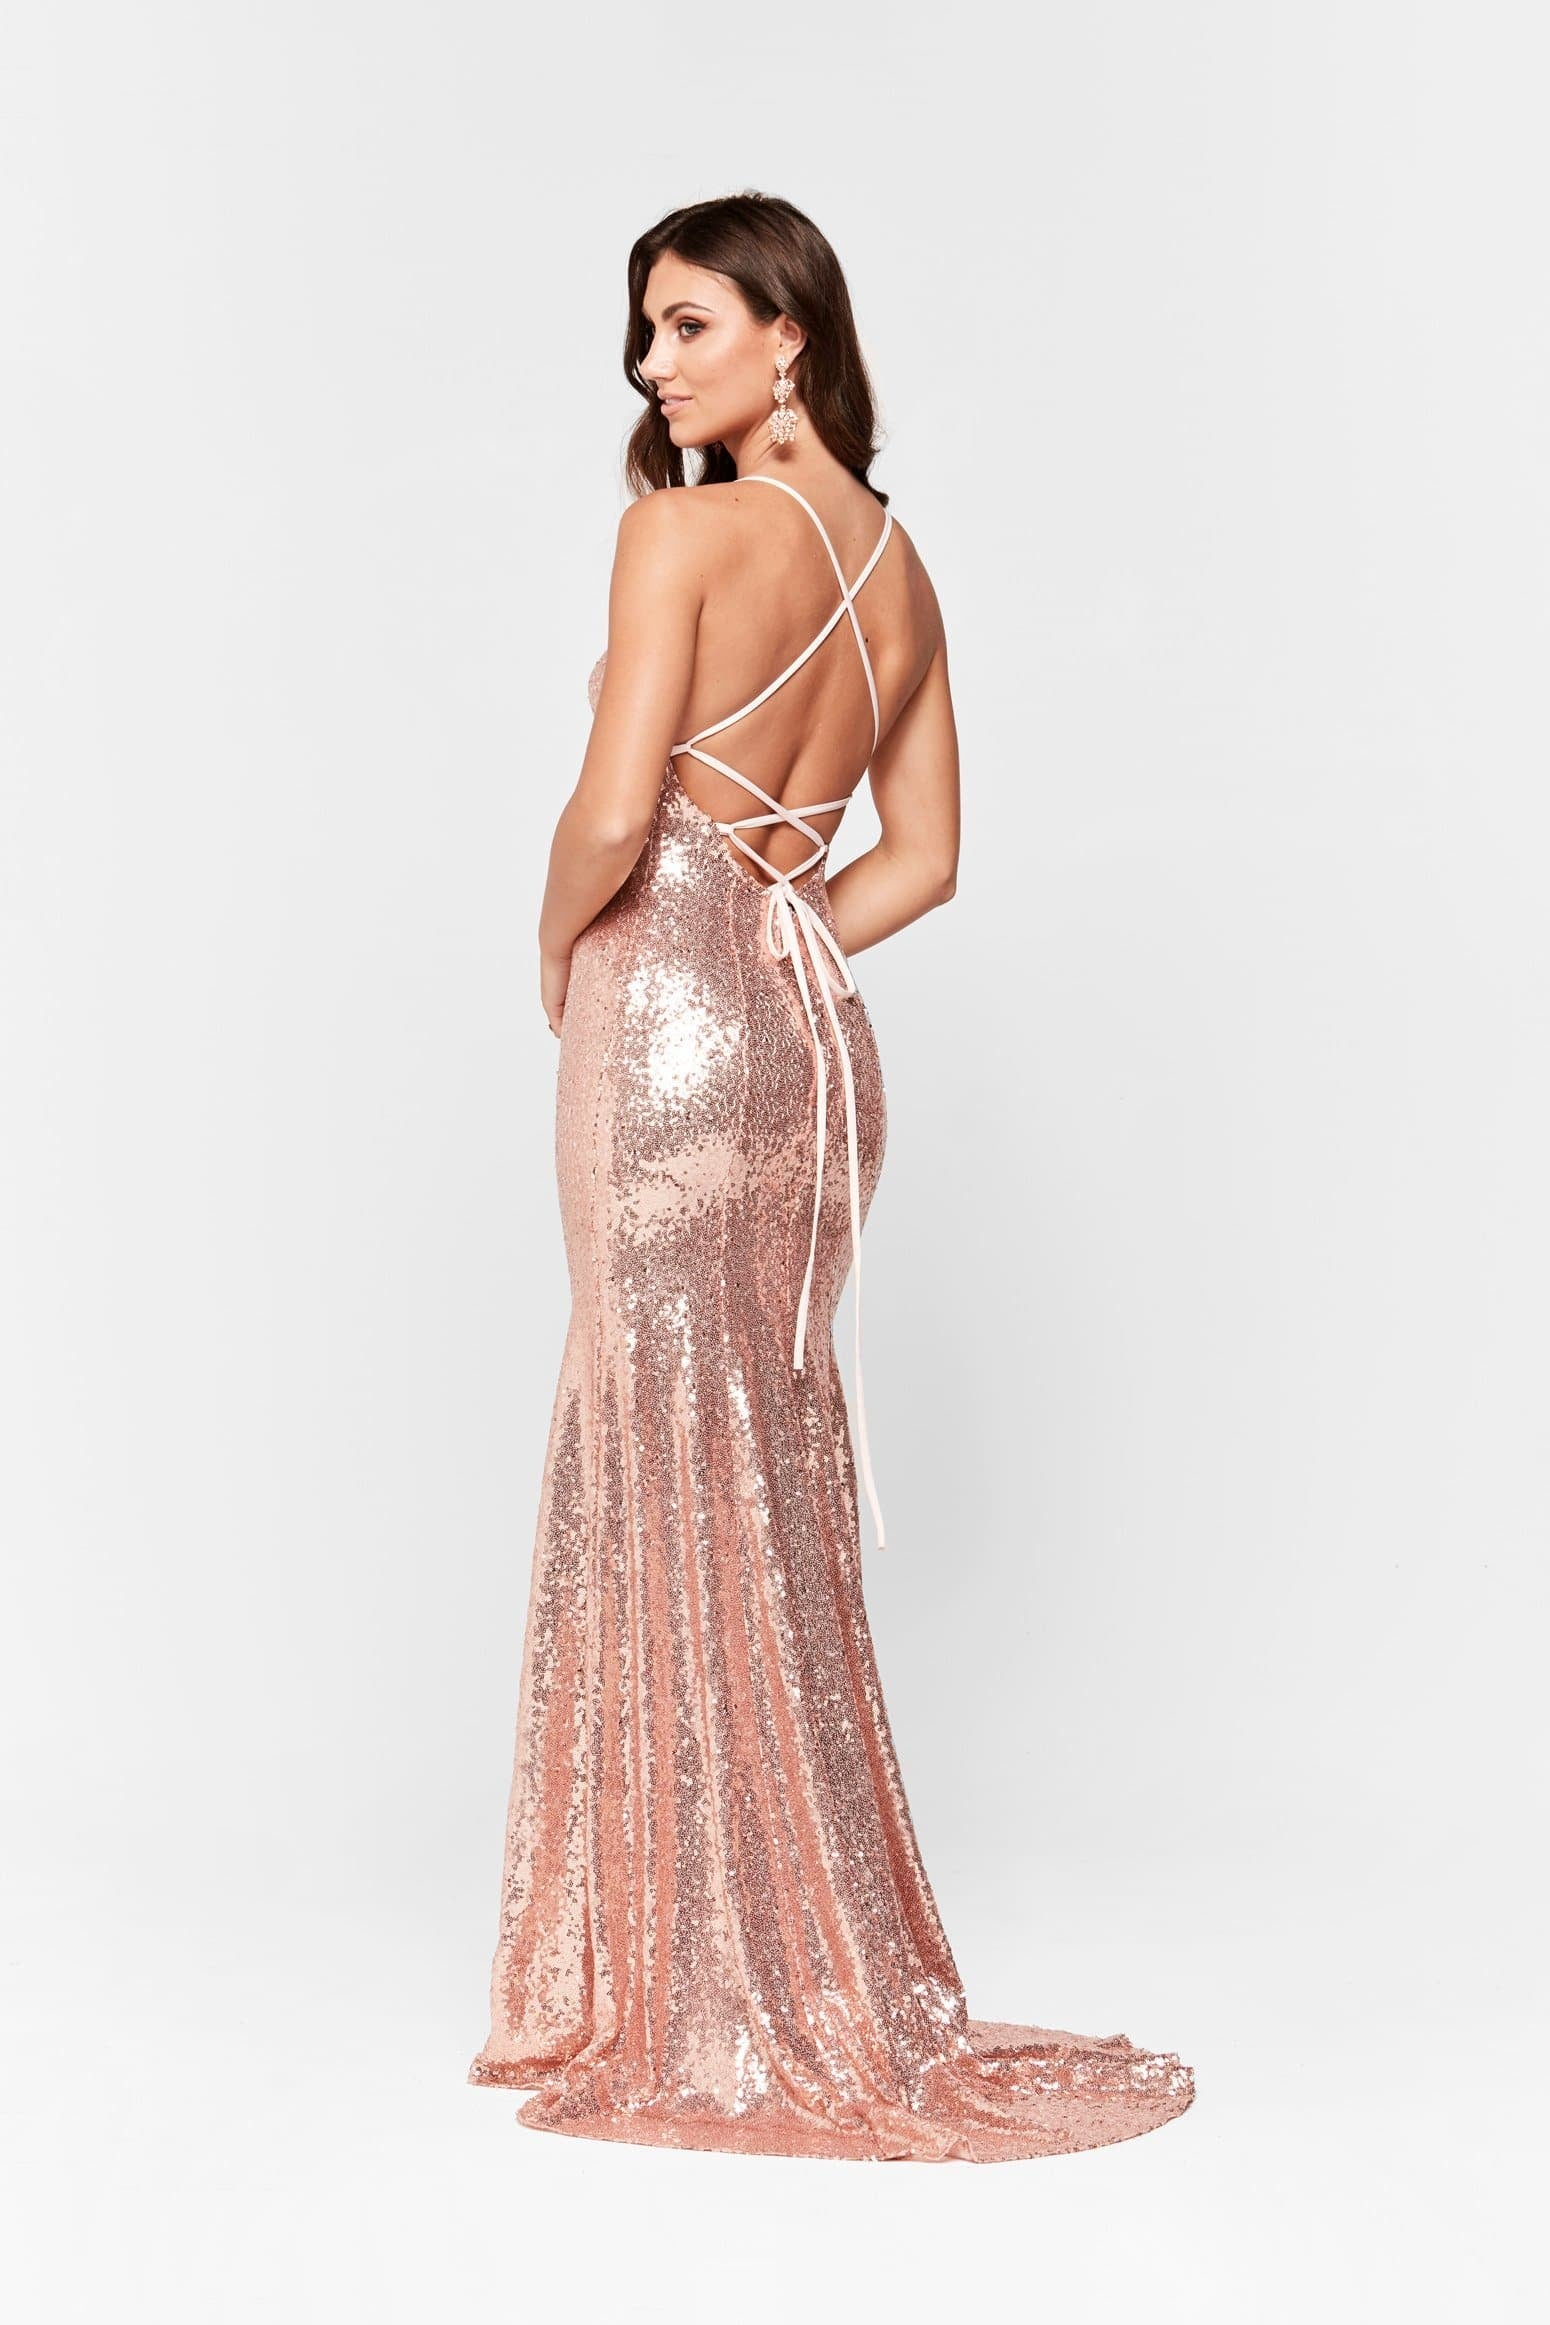 Esmee Gown - Rose Gold Sequin Lace Up Square Neck Mermaid Dress ...